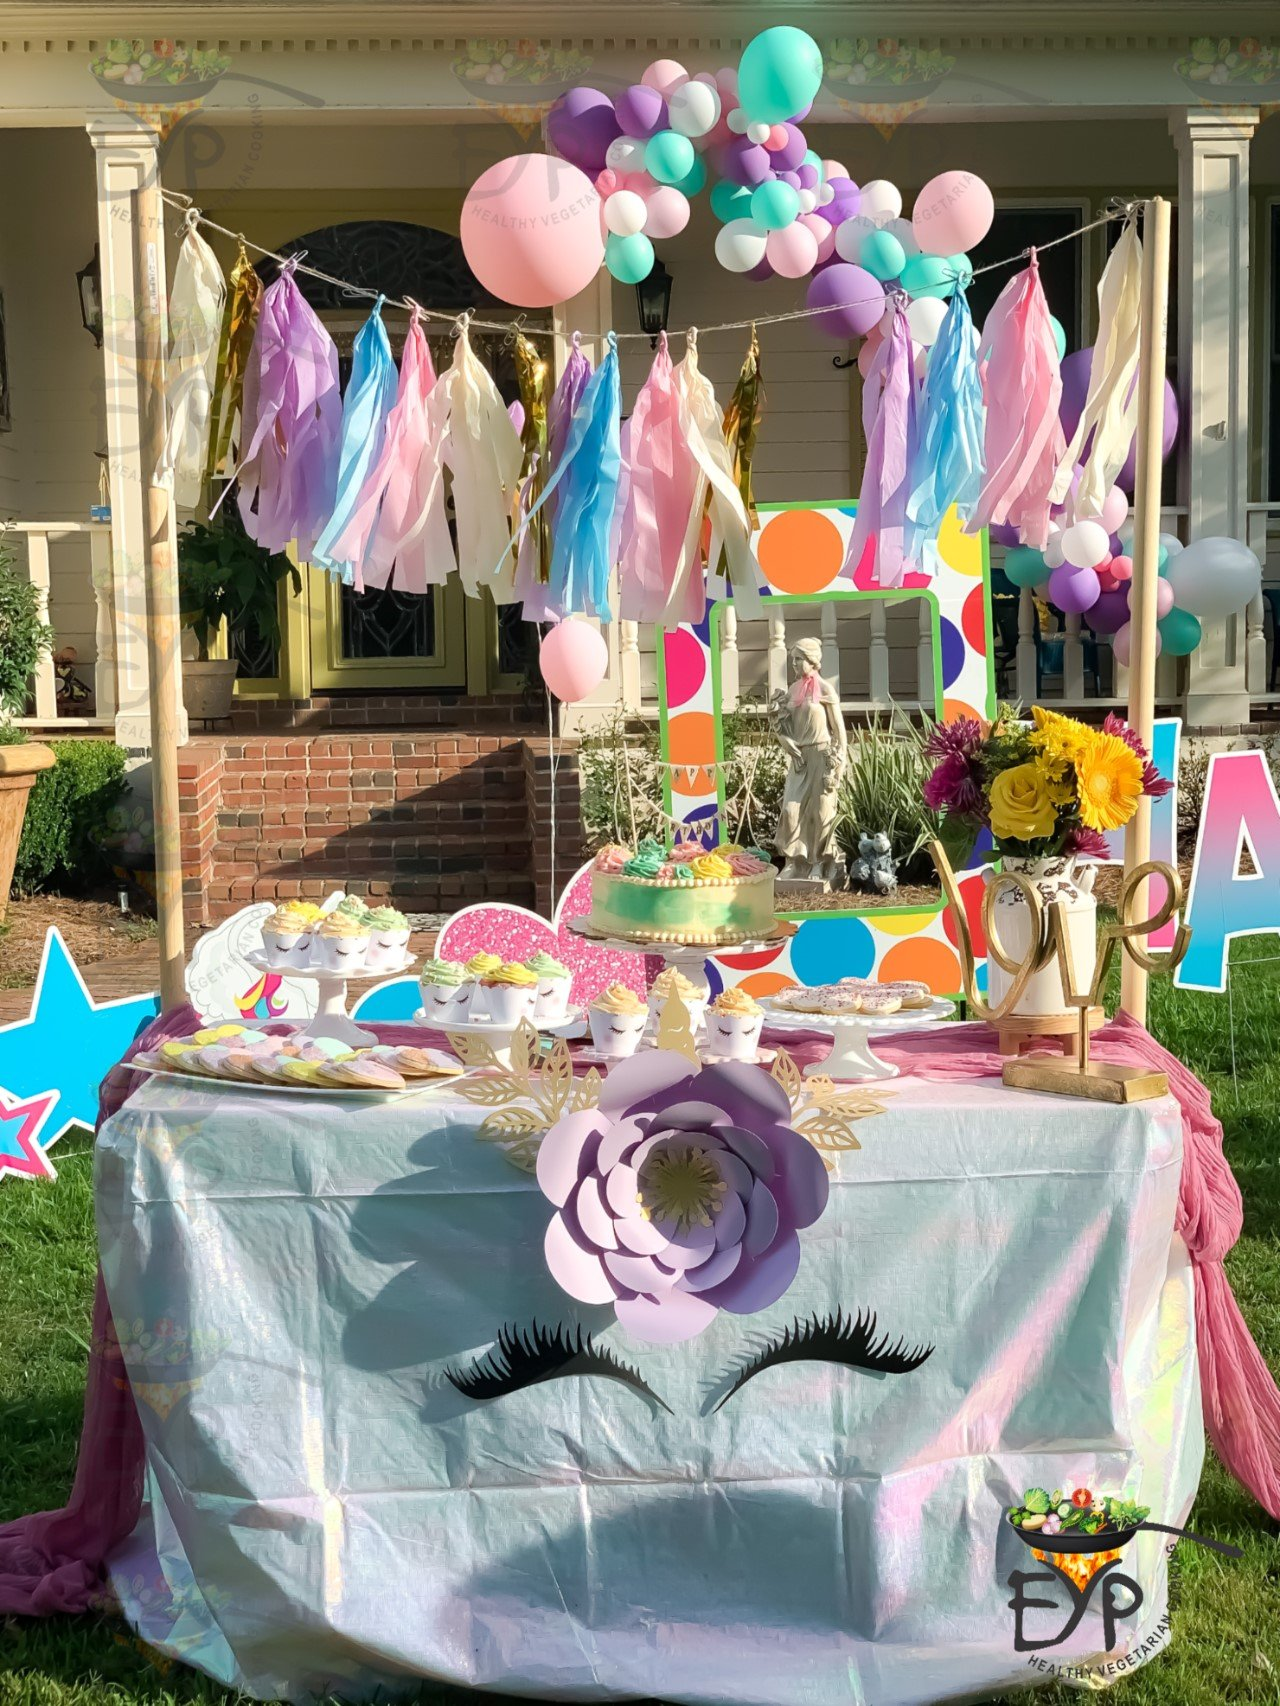 Cake table decoration for outdoor birthday party